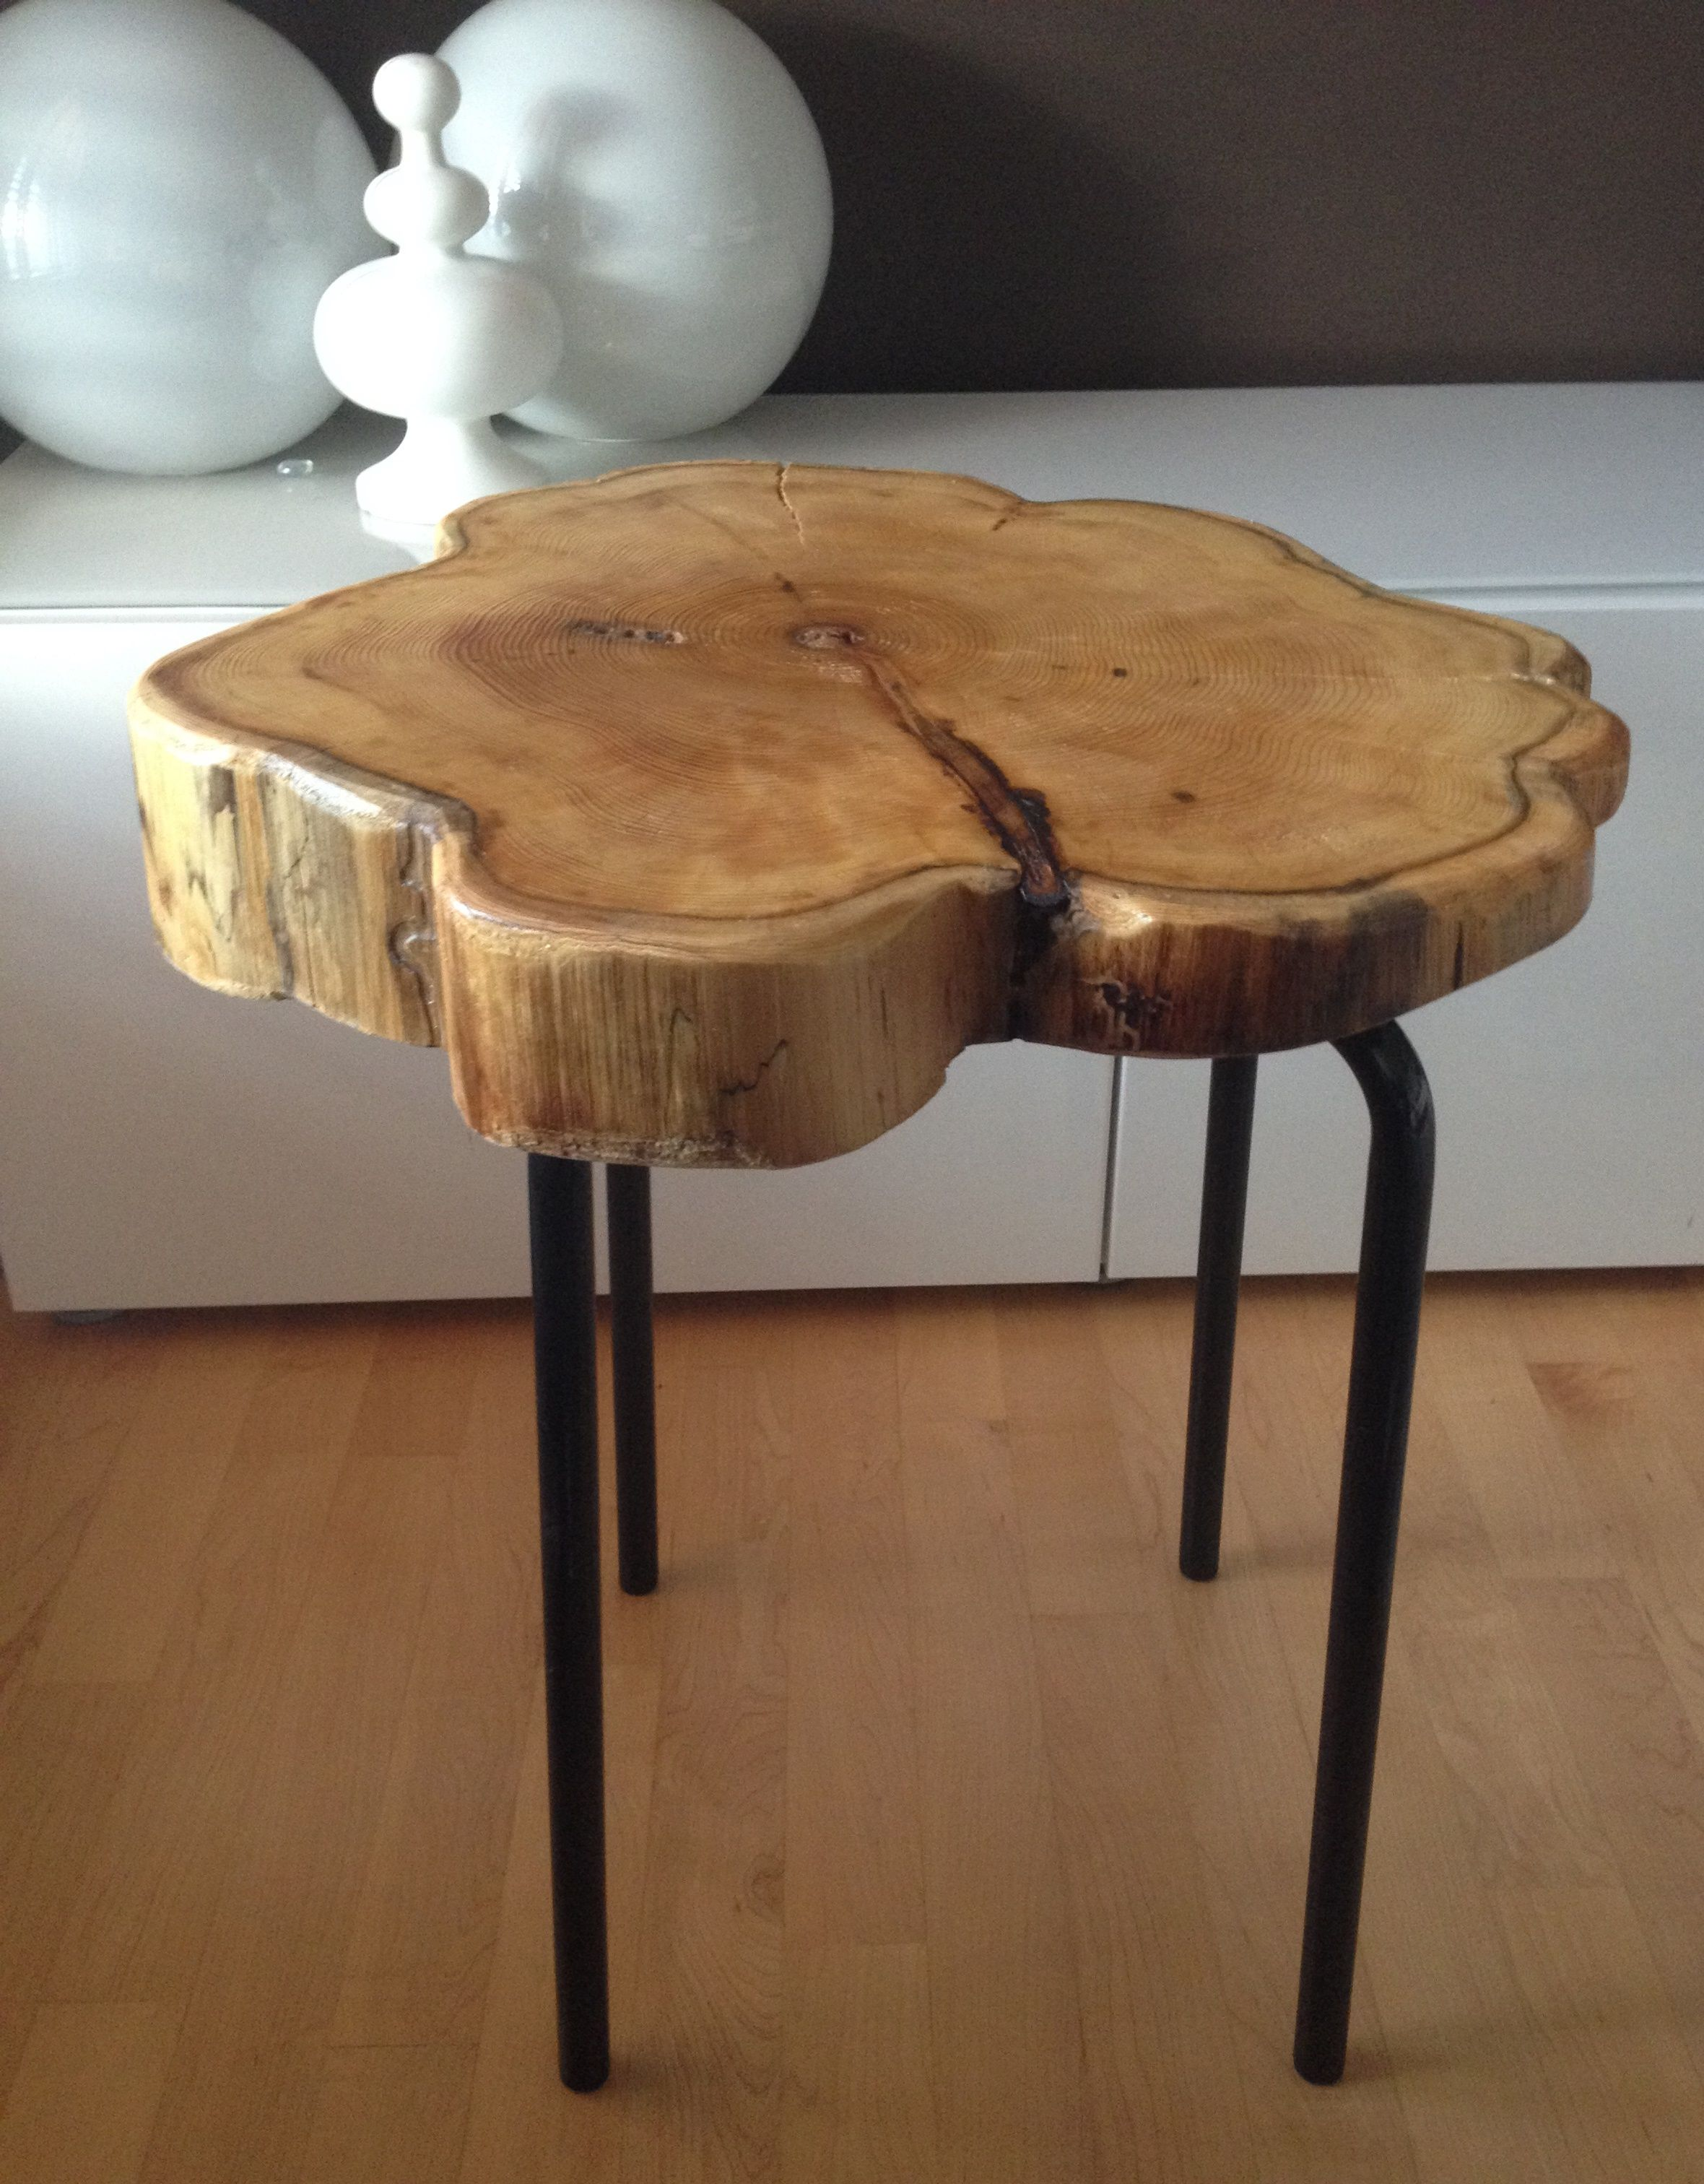 Live Edge Table With Hairpin Legs Live Edge Coffee Table With Metal Legs Rustic D Cor Resort